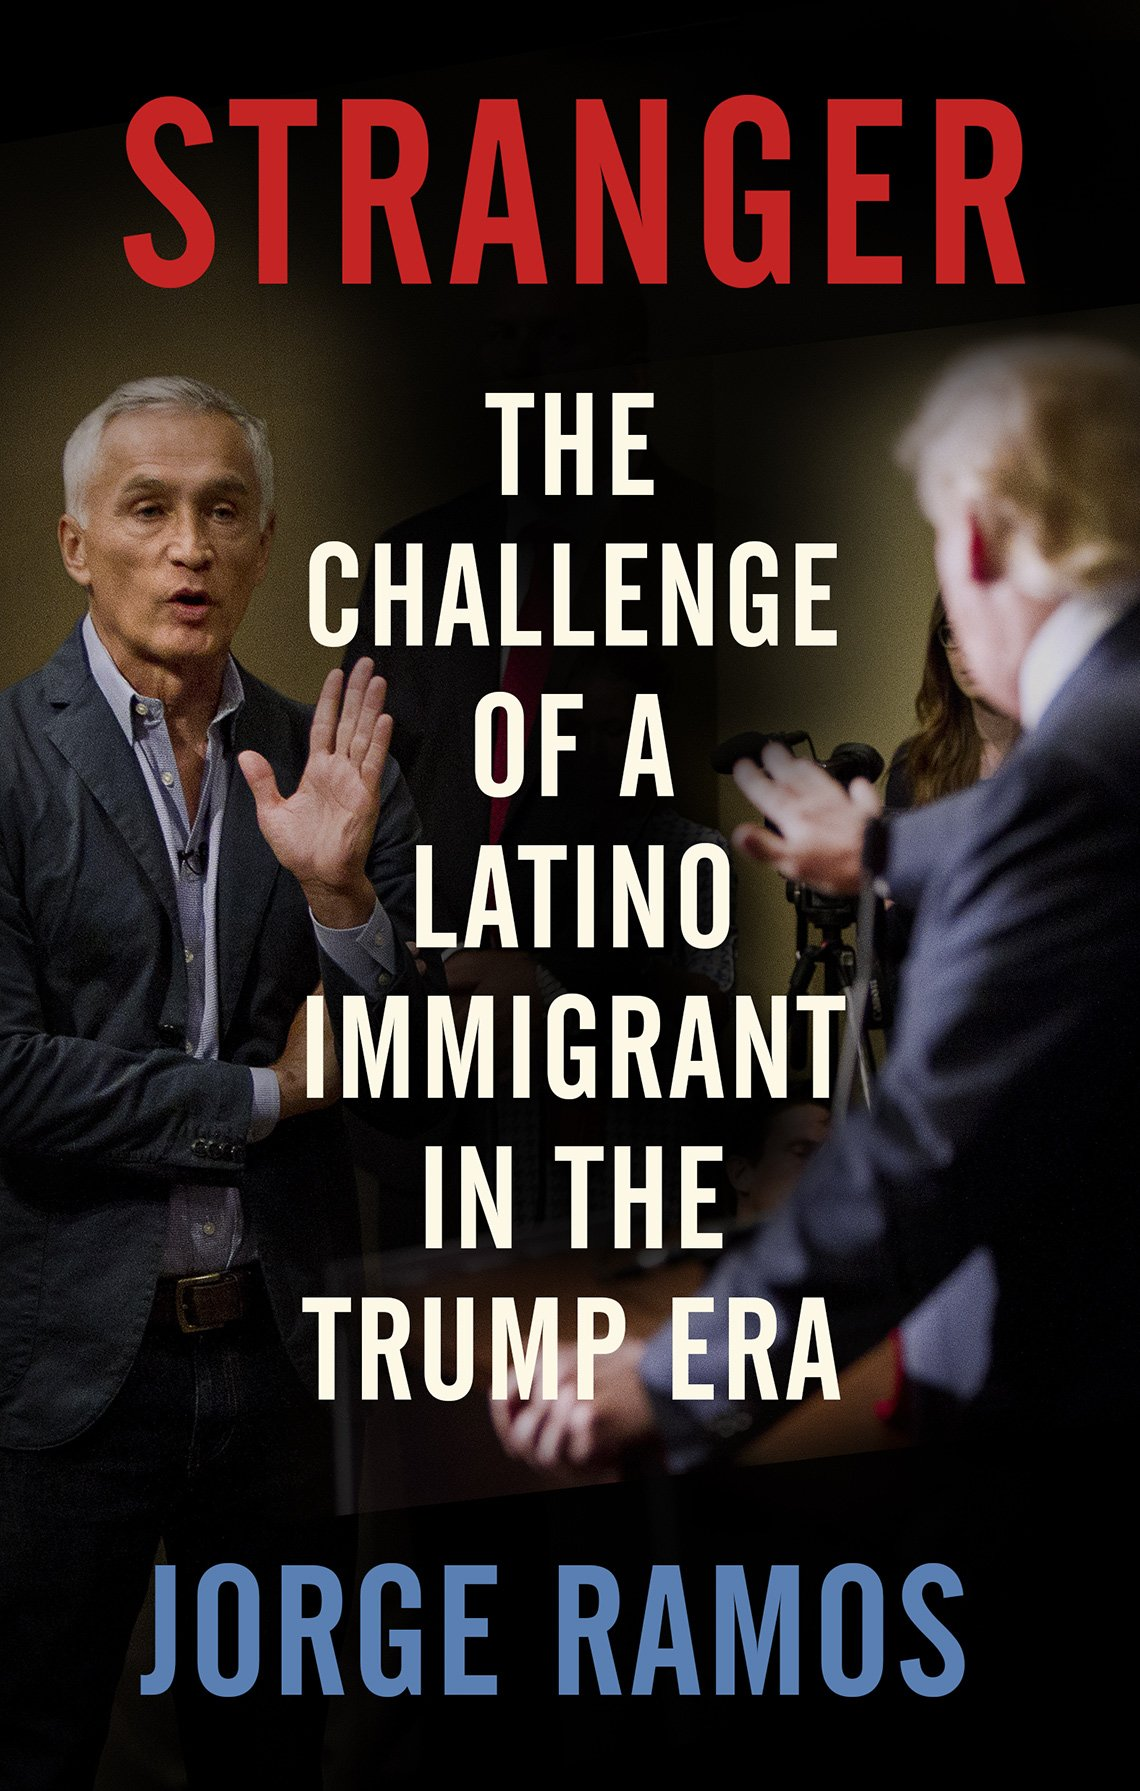 Jorge Ramos book cover in English